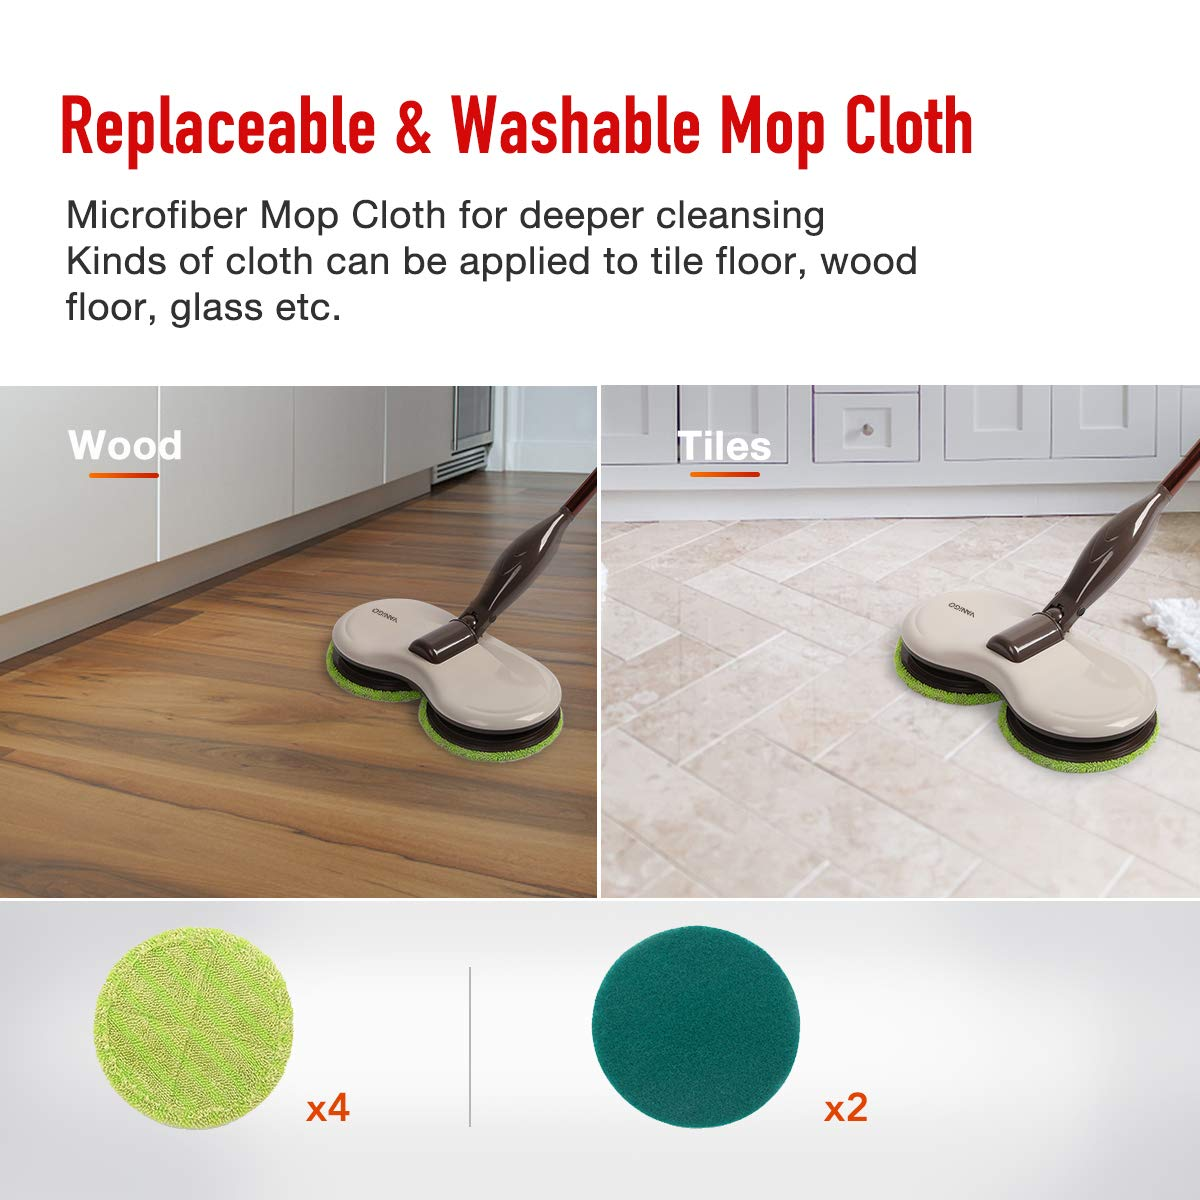 Electric Spin Mop, Cordless Floor Sweeper Cleaner with Dual Spinning Heads and Replaceable Pads for Tile Wood Hard Floor Window by VANiGO (Image #4)